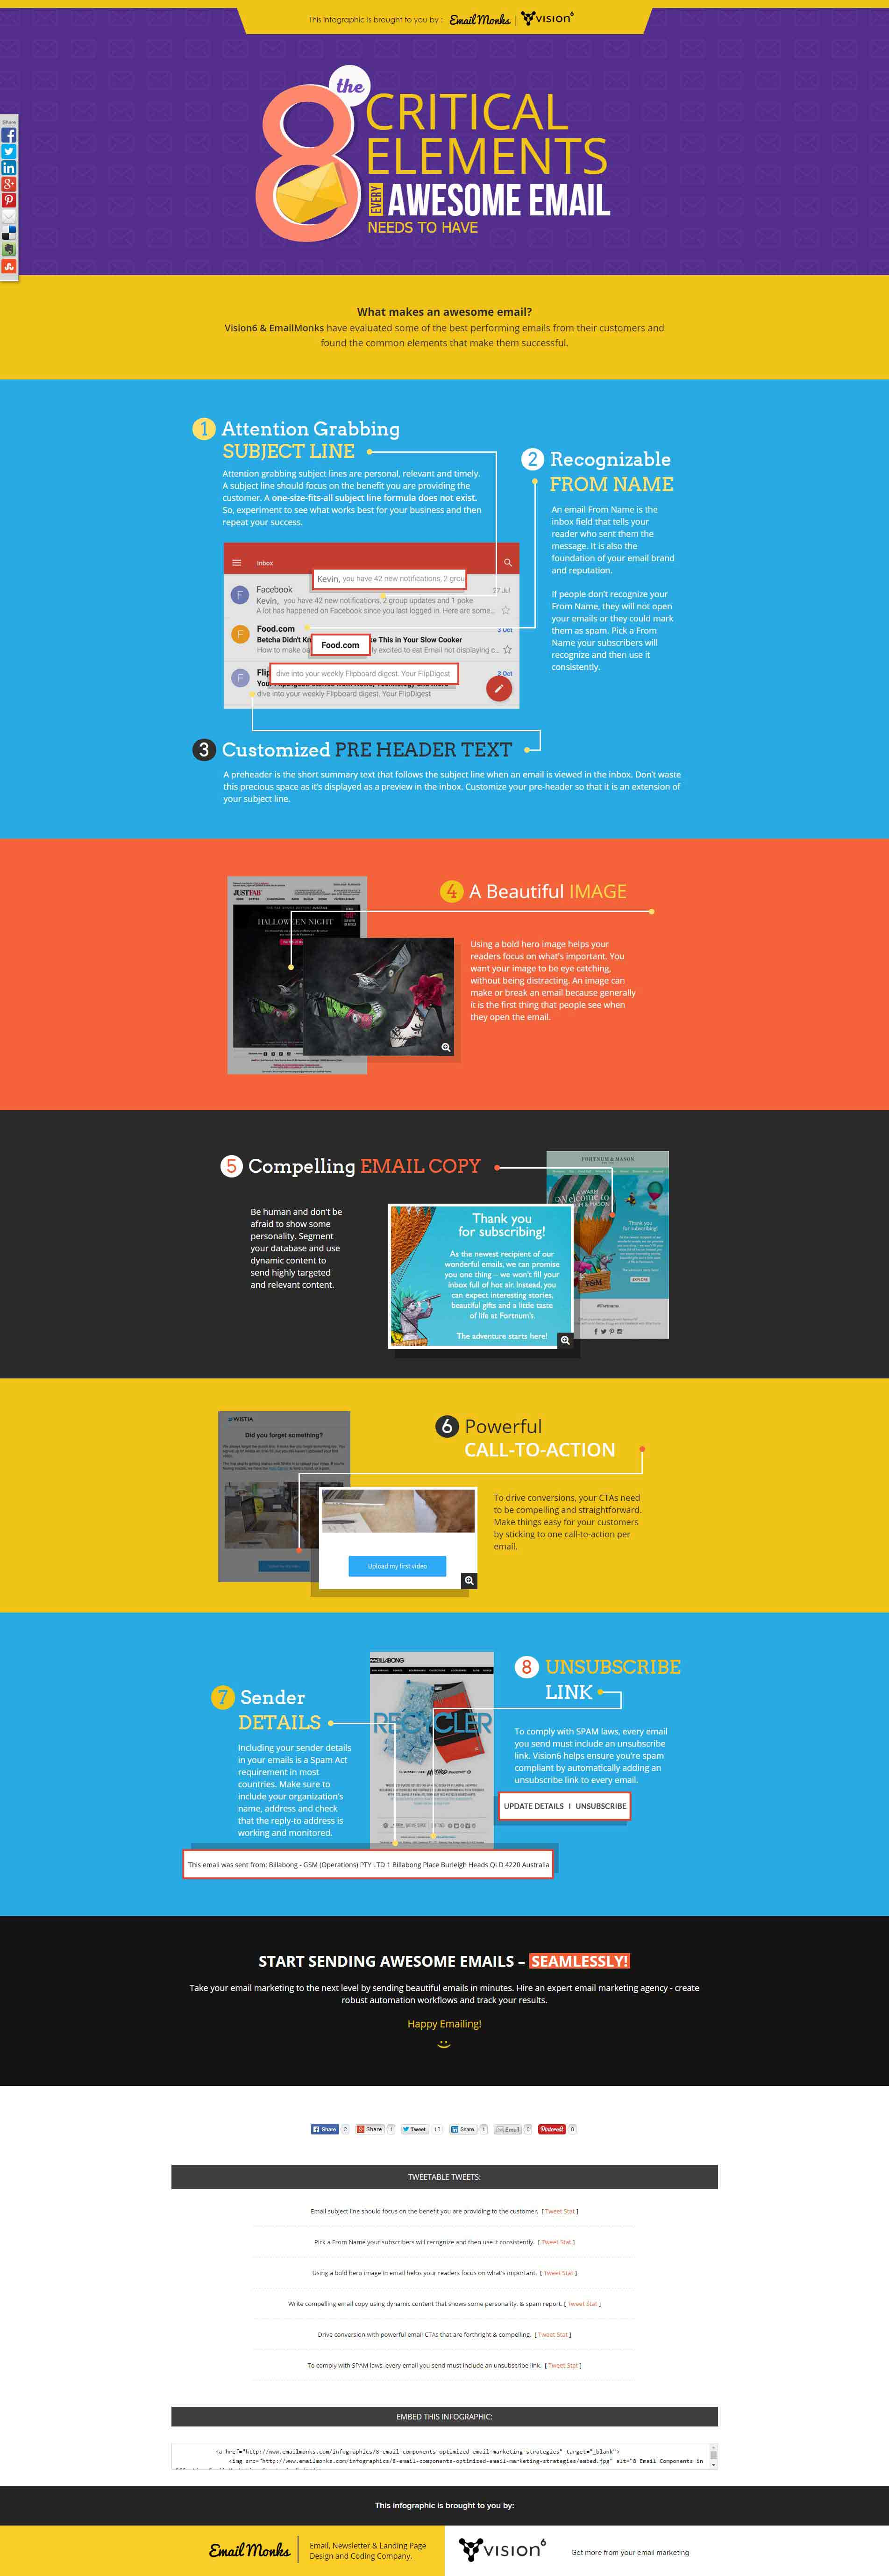 8 critical elements of an awesome email [Infographic]